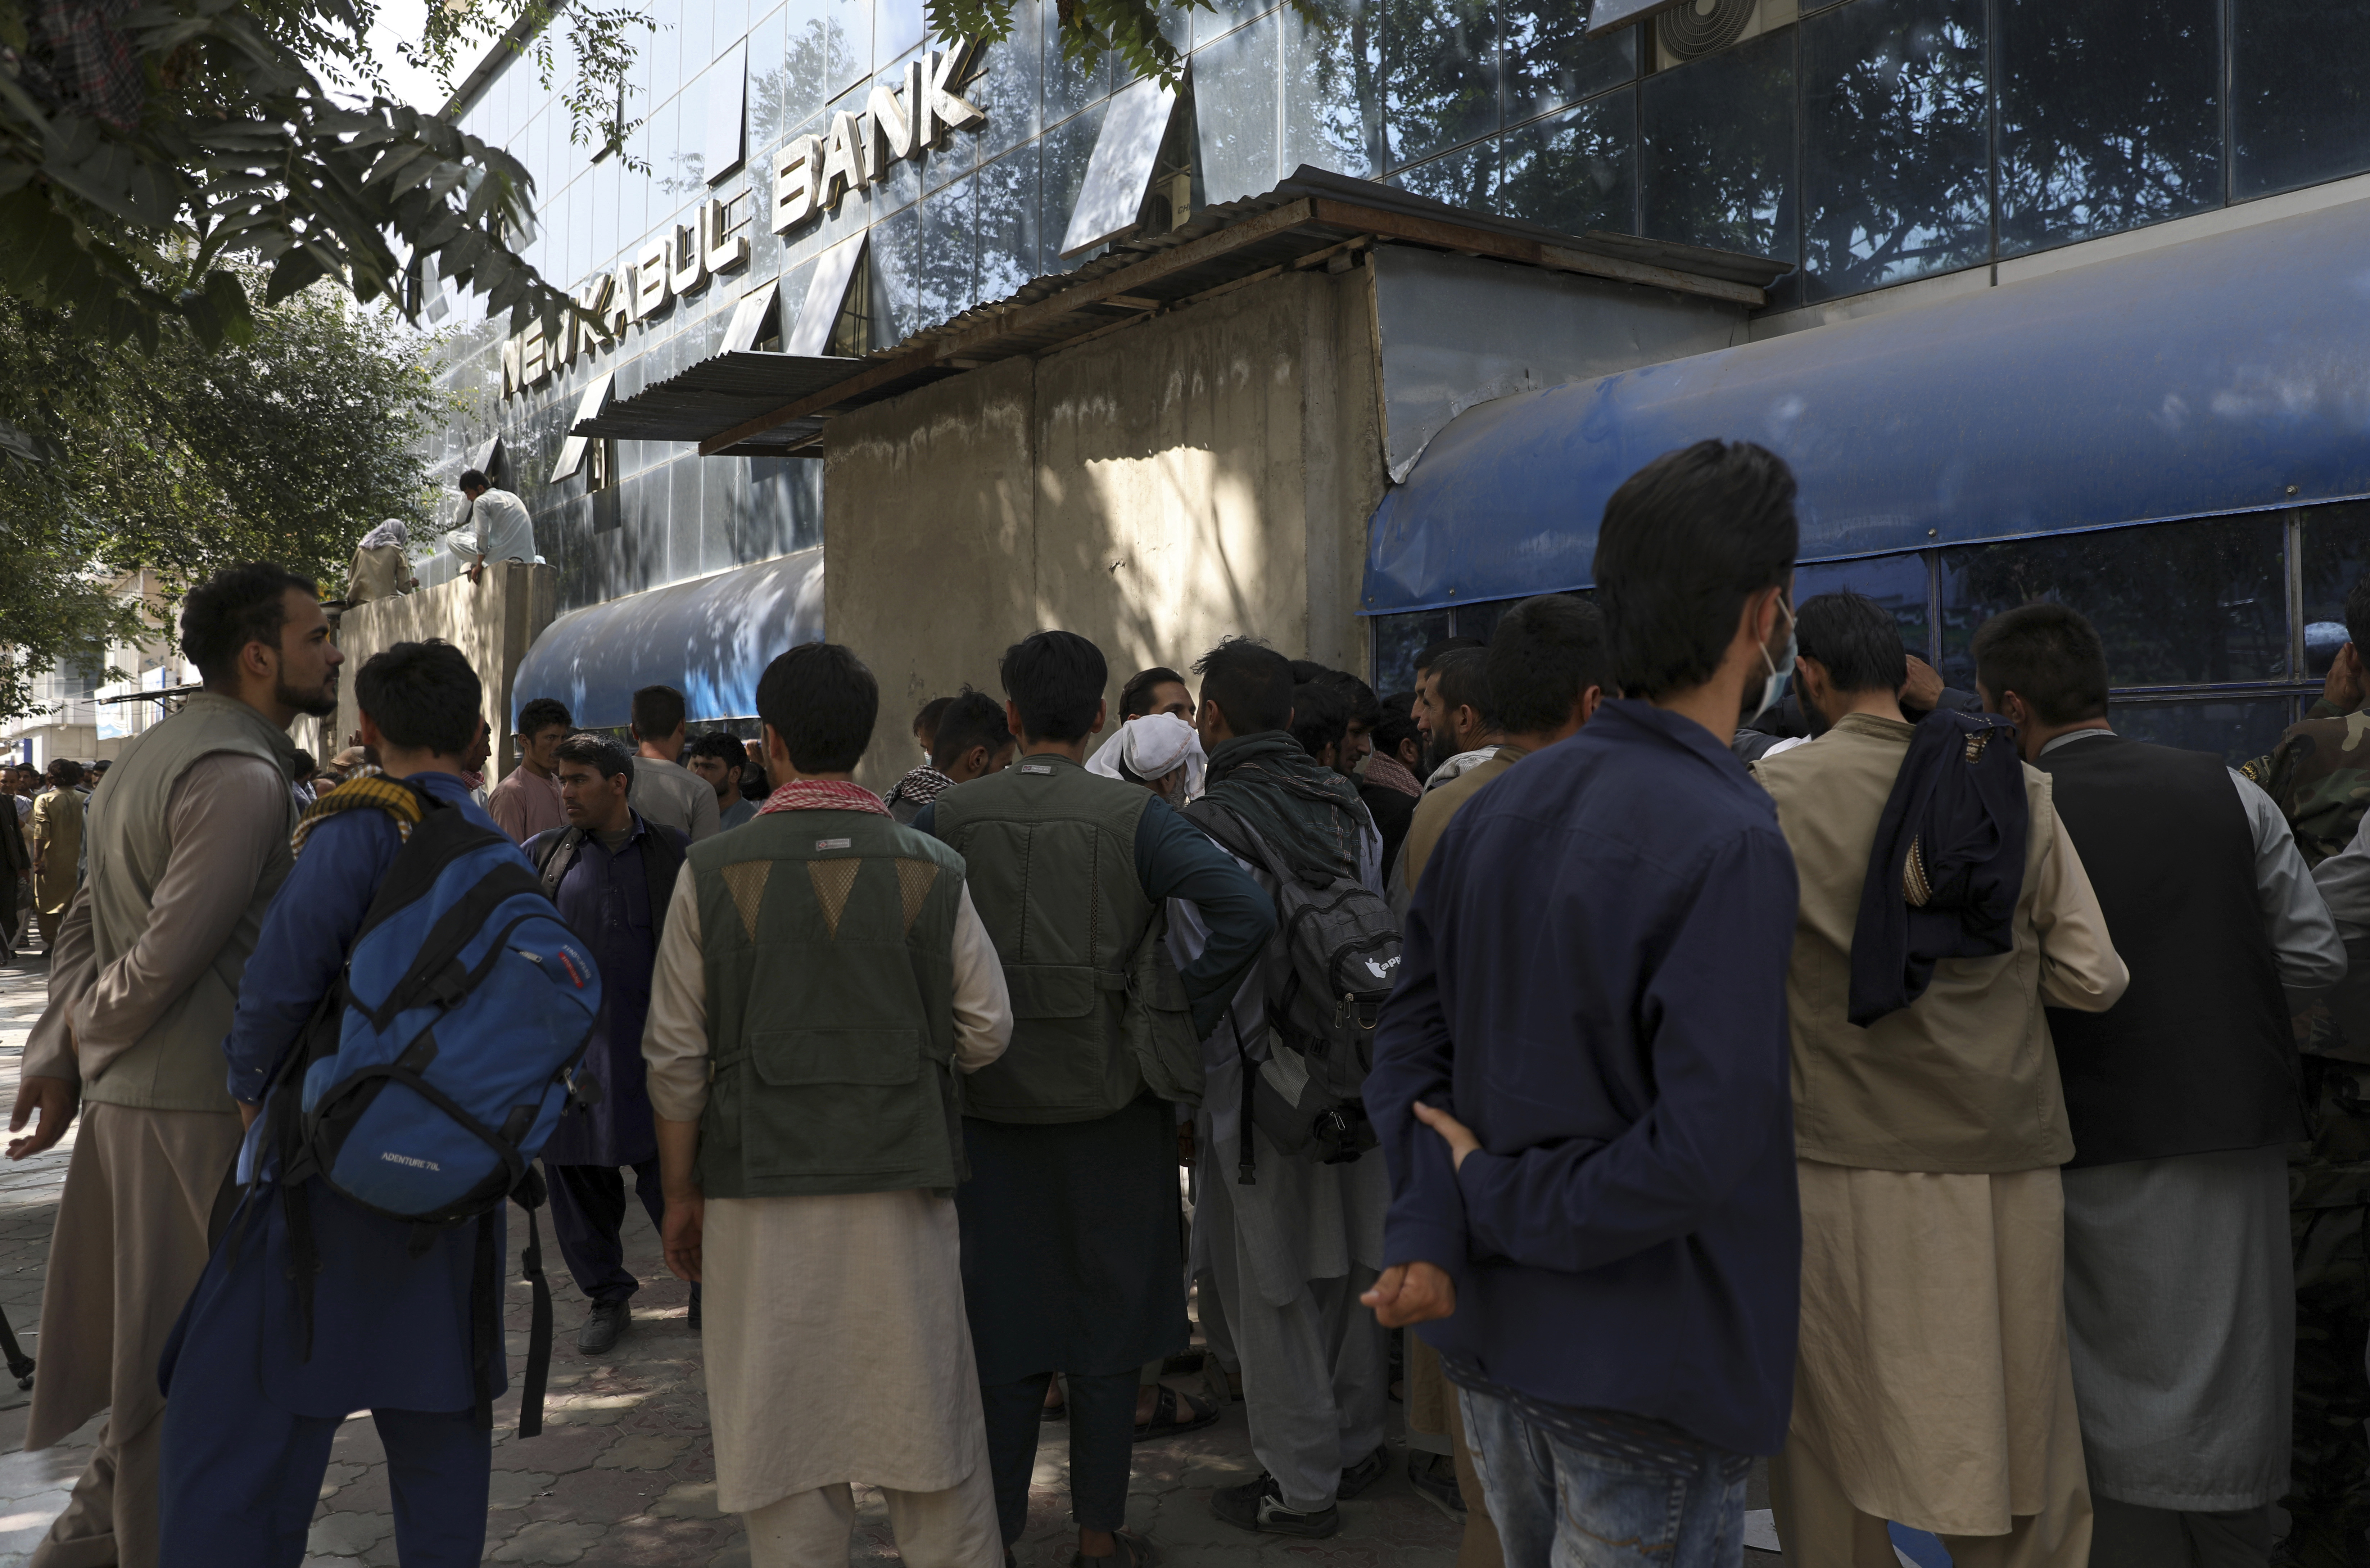 Photo: Afghans wait in long lines for hours to try to withdraw money, in front of Kabul Bank, in Kabul, Afghanistan, Sunday, Aug. 15, 2021. Officials say Taliban fighters have entered Kabul and are seeking the unconditional surrender of the central government. (AP Photo/Rahmat Gul)